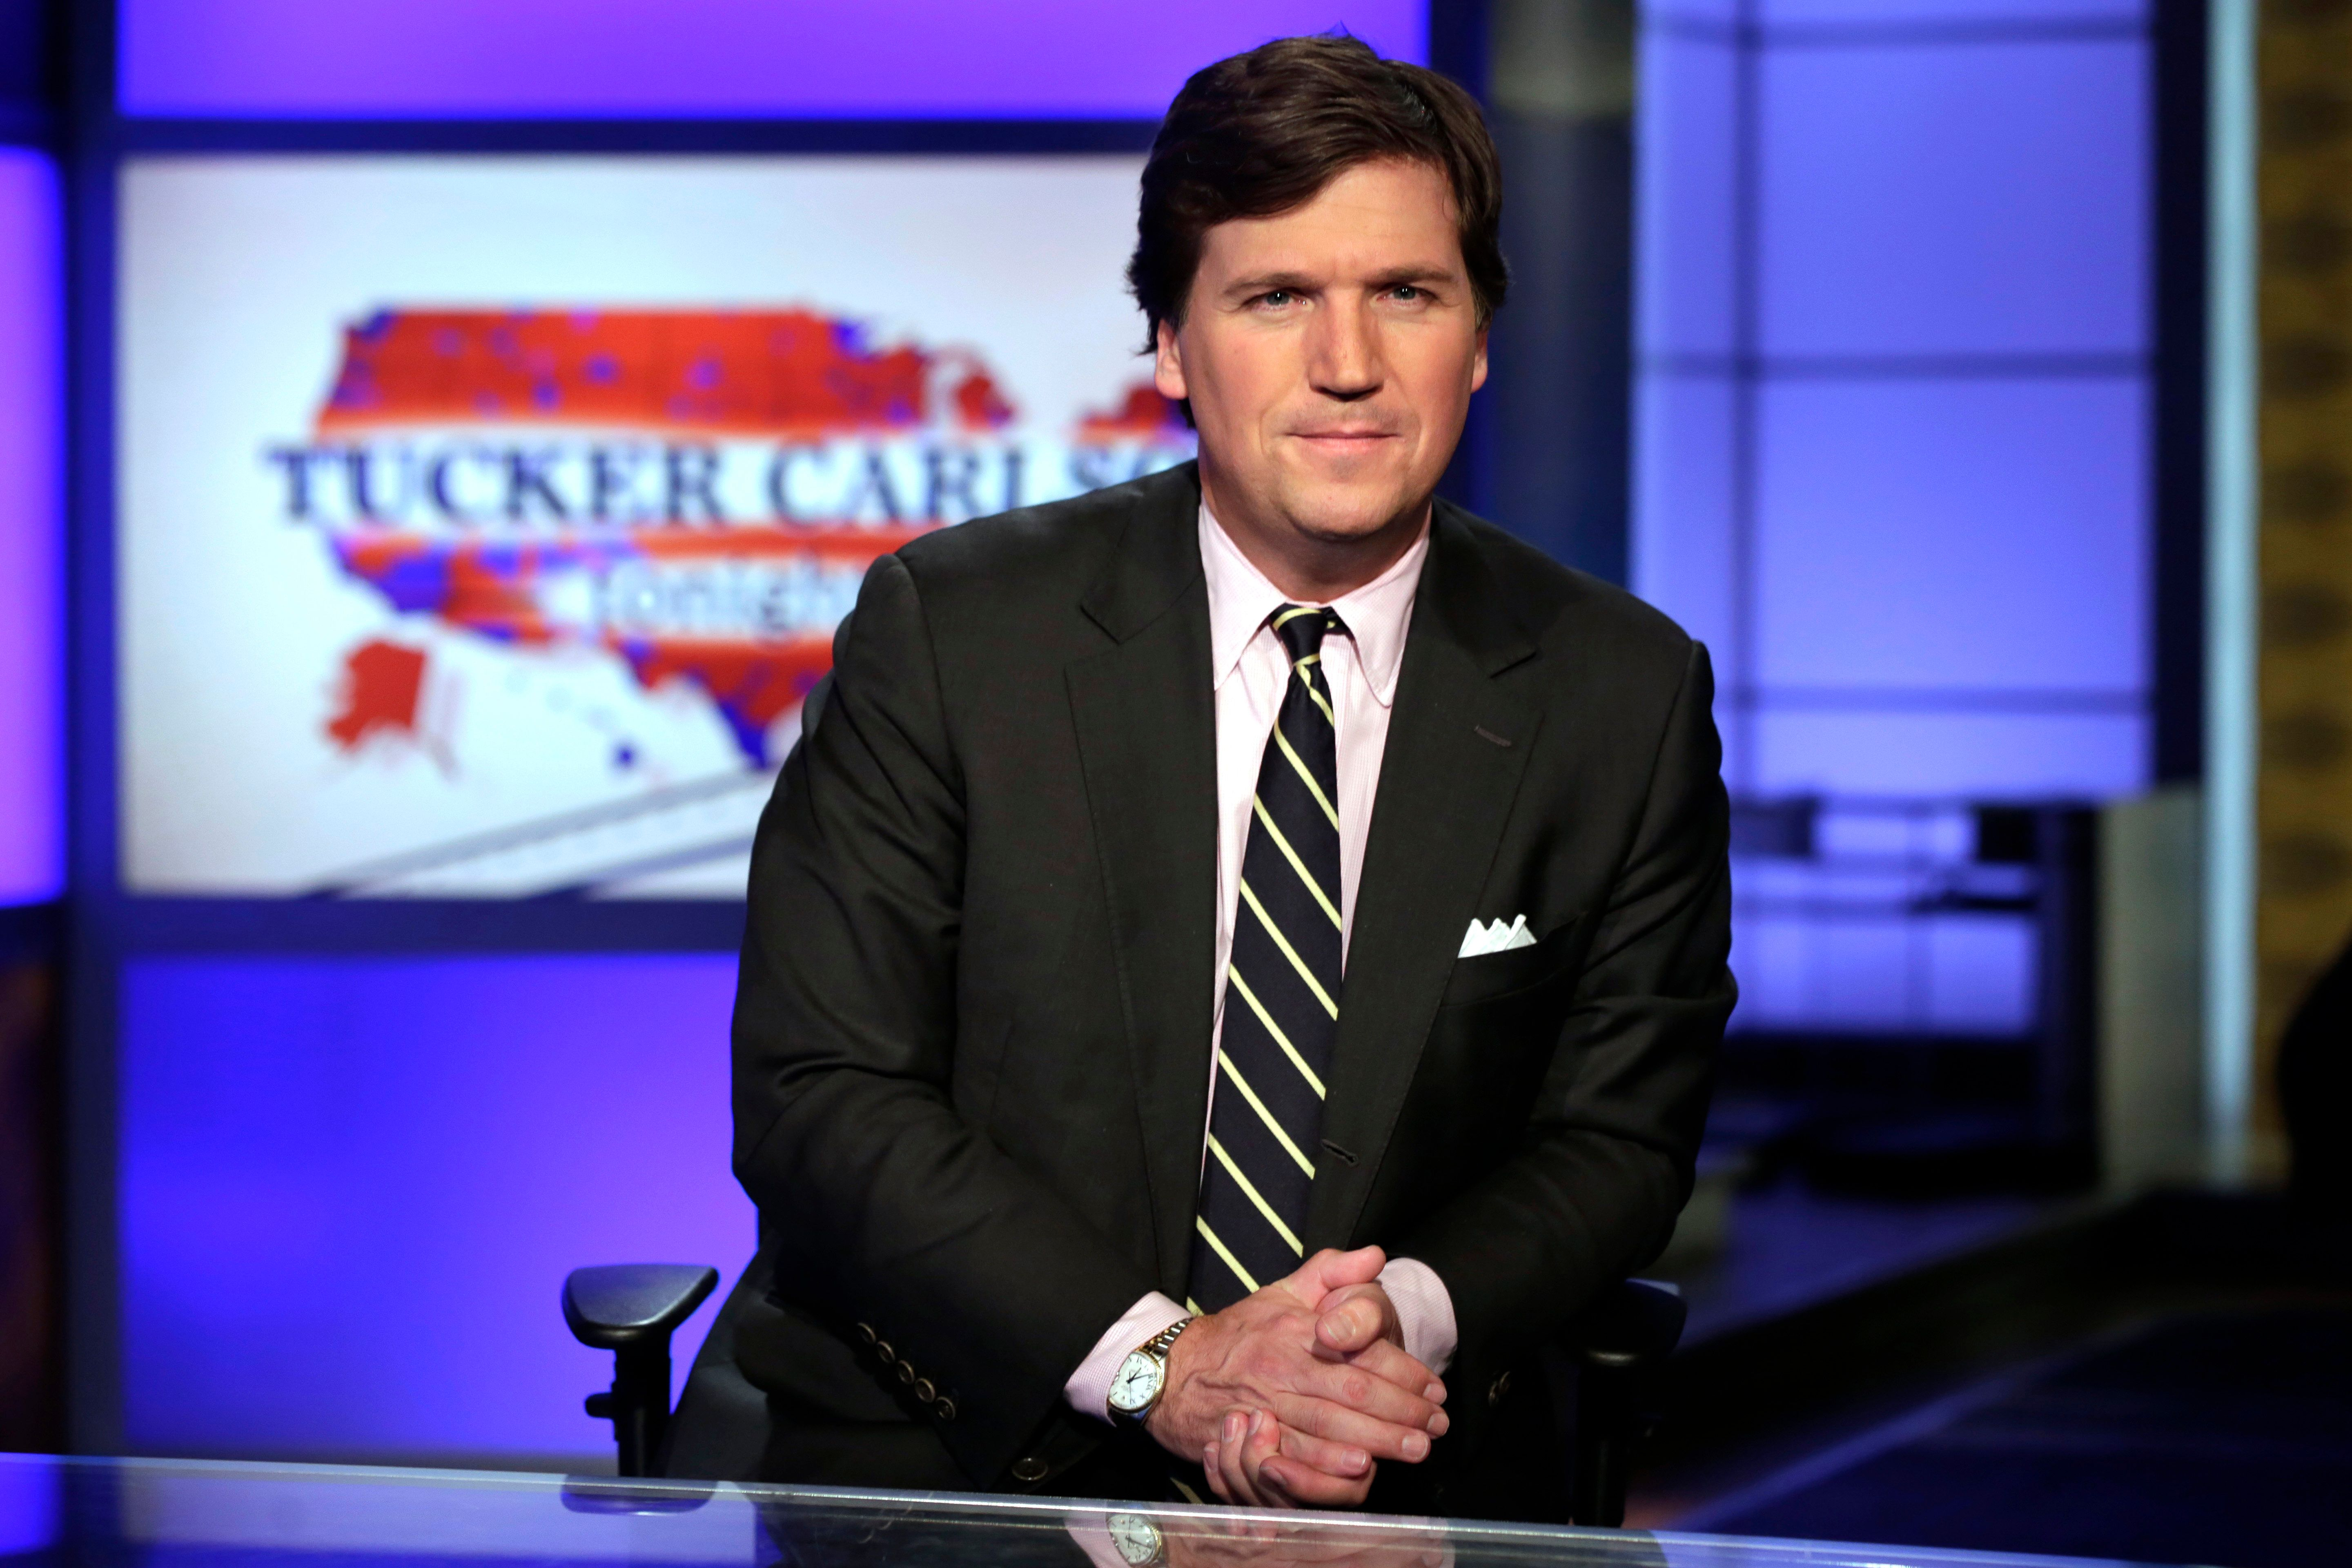 """FILE - In this March 2, 2017, file photo, Tucker Carlson, host of """"Tucker Carlson Tonight,"""" poses for photos in a Fox News Channel studio in New York. Carlson says he's shocked his segments this week on a South African policy on land reform should be considered an appeal to white nationalists - let alone spark an international incident. (AP Photo/Richard Drew, File)"""